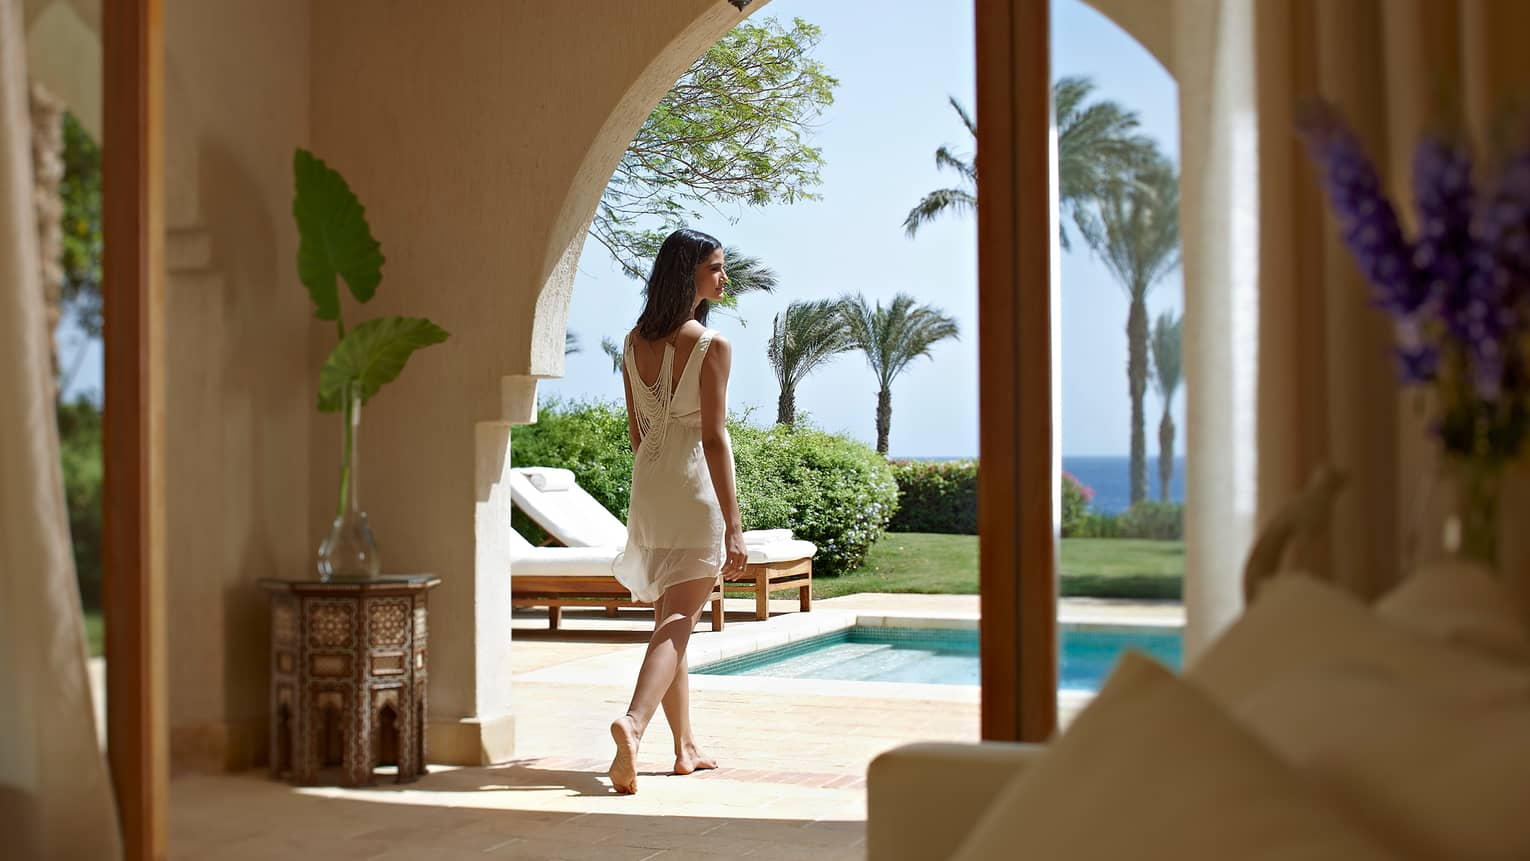 Woman wearing white dress walks through open villa door to sunny private patio, swimming pool